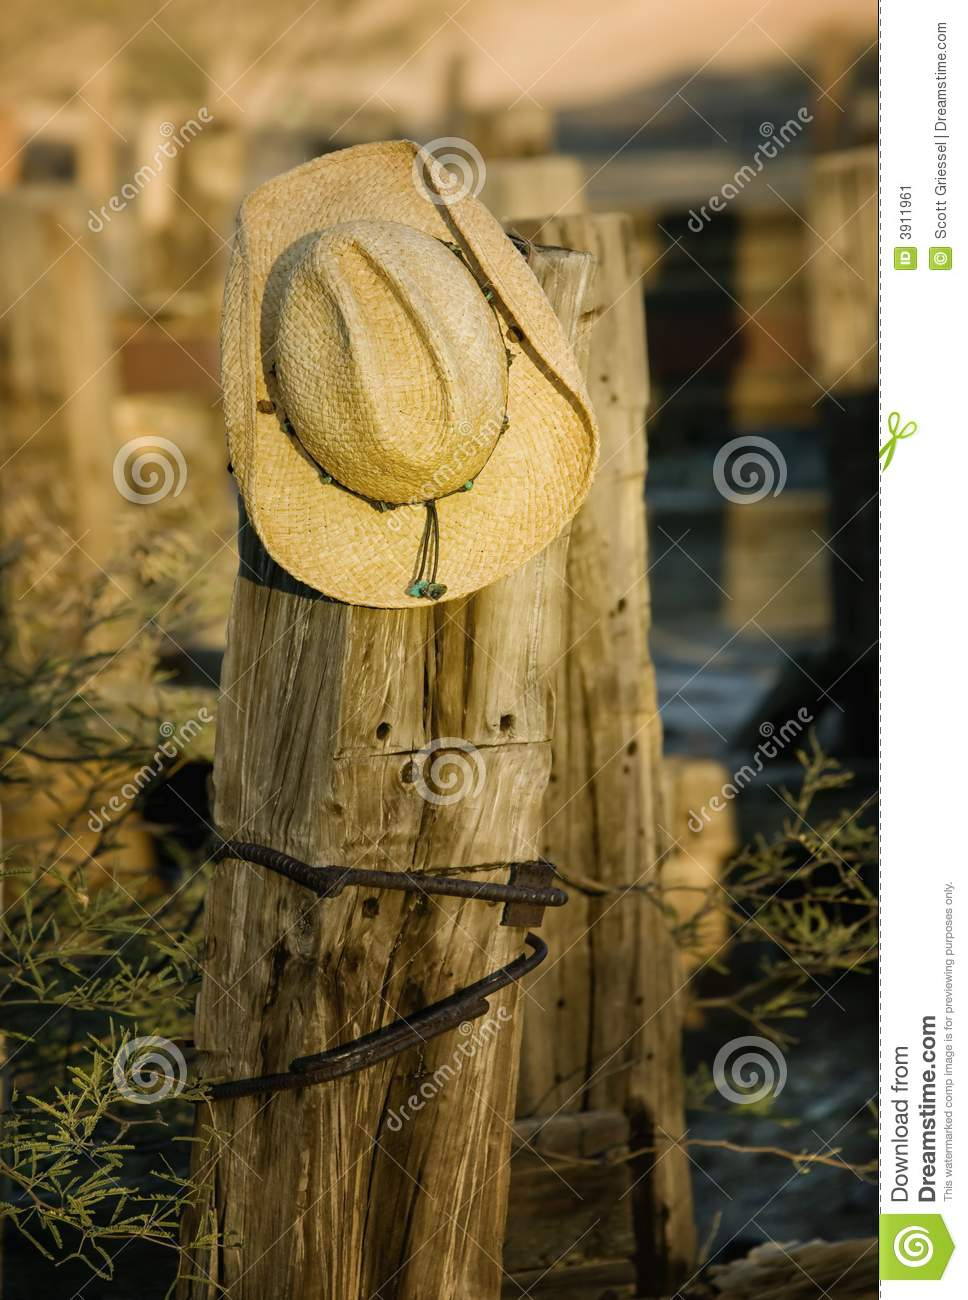 dc9d7892901 Cowboy Hat on a Post stock image. Image of country